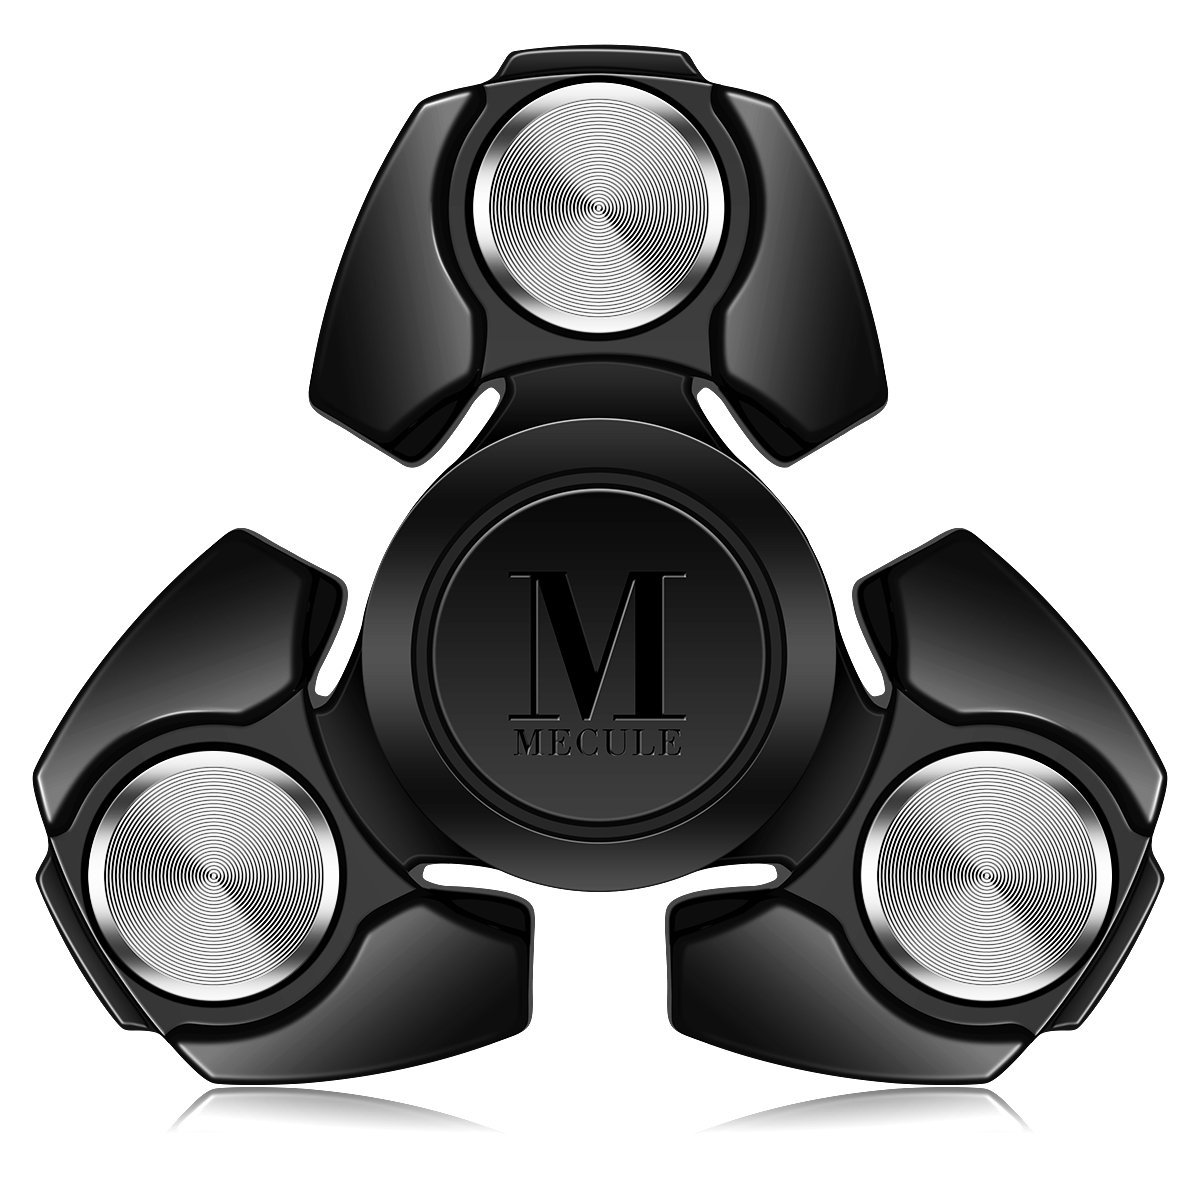 MECULE Fidget Spinner EDC Toy Premium Hand Spinner Durable ABS Original Design Tri Spinner Relieves Stress and Anxiety, Black